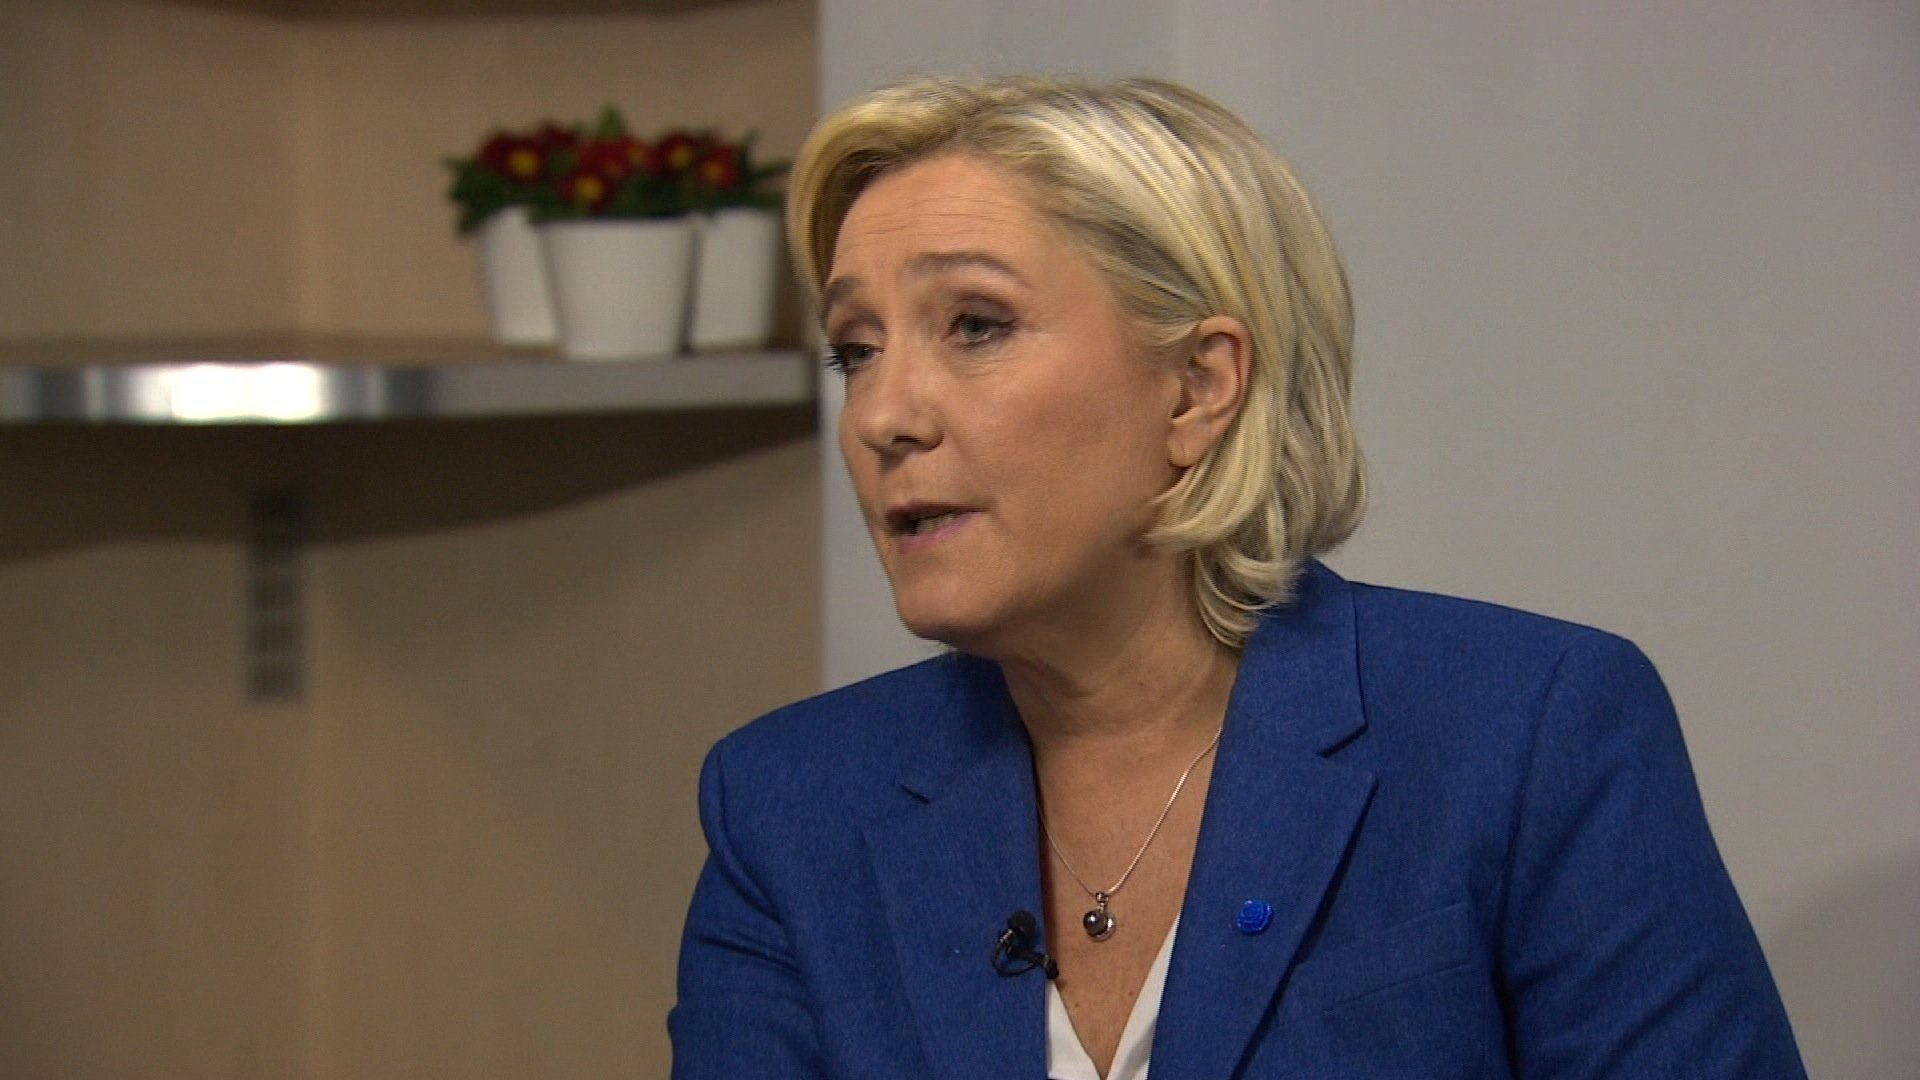 Marine Le Pen charged over European Union funding scandal